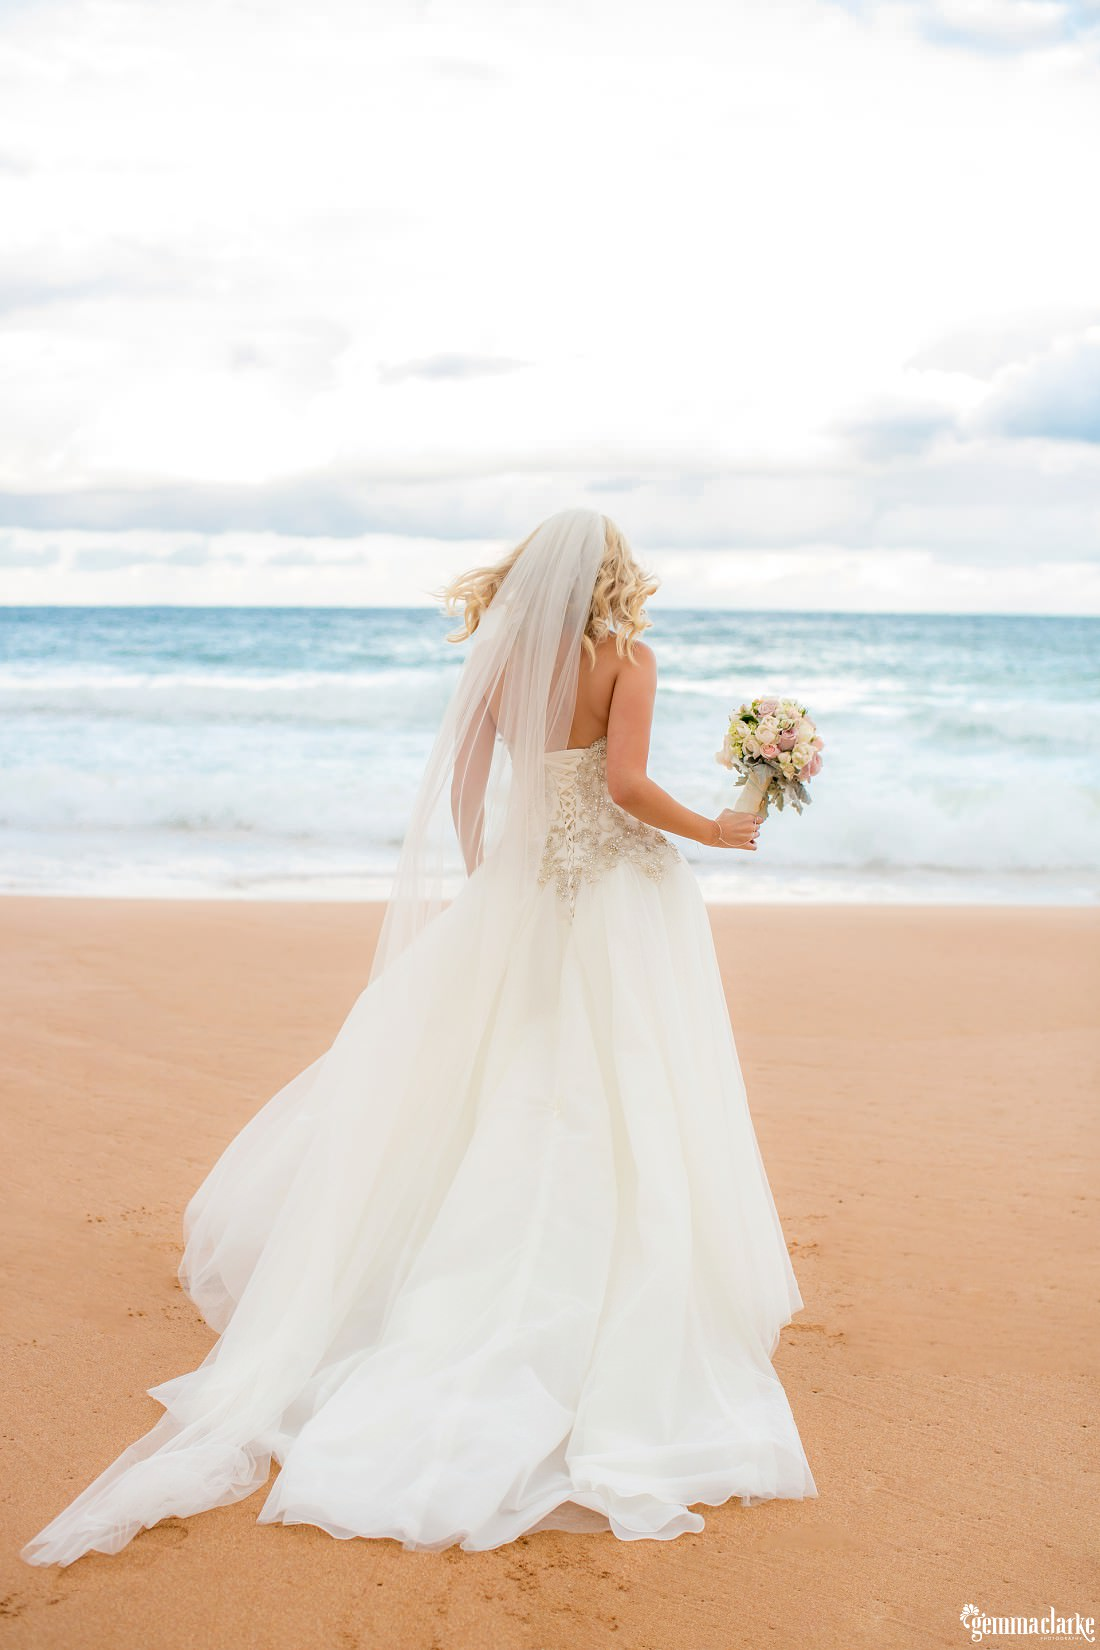 A bride holding her bouquet and standing on the beach, looking toward the ocean